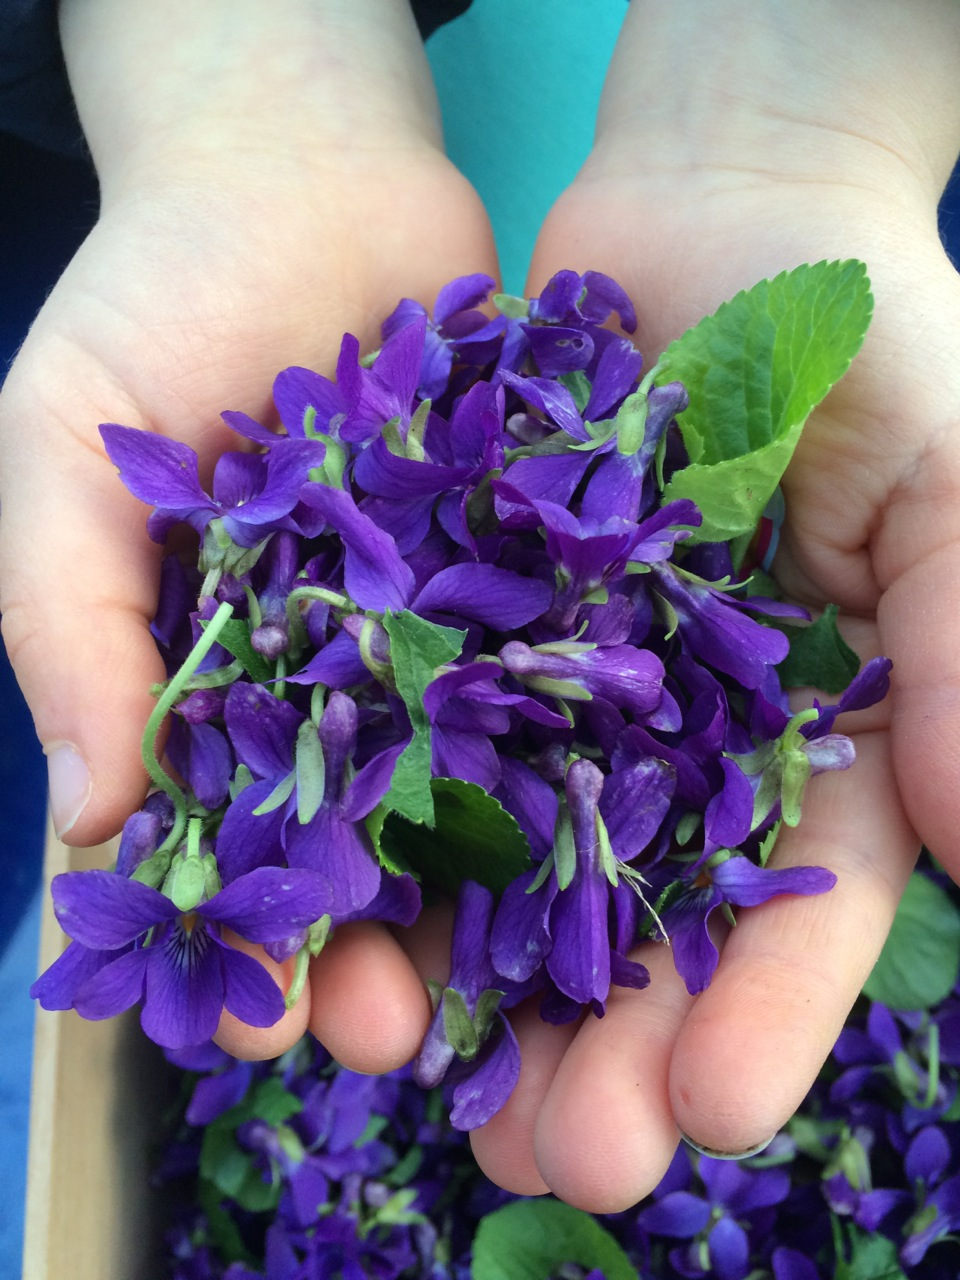 GRuB Youth holds a handful of fresh picked violets